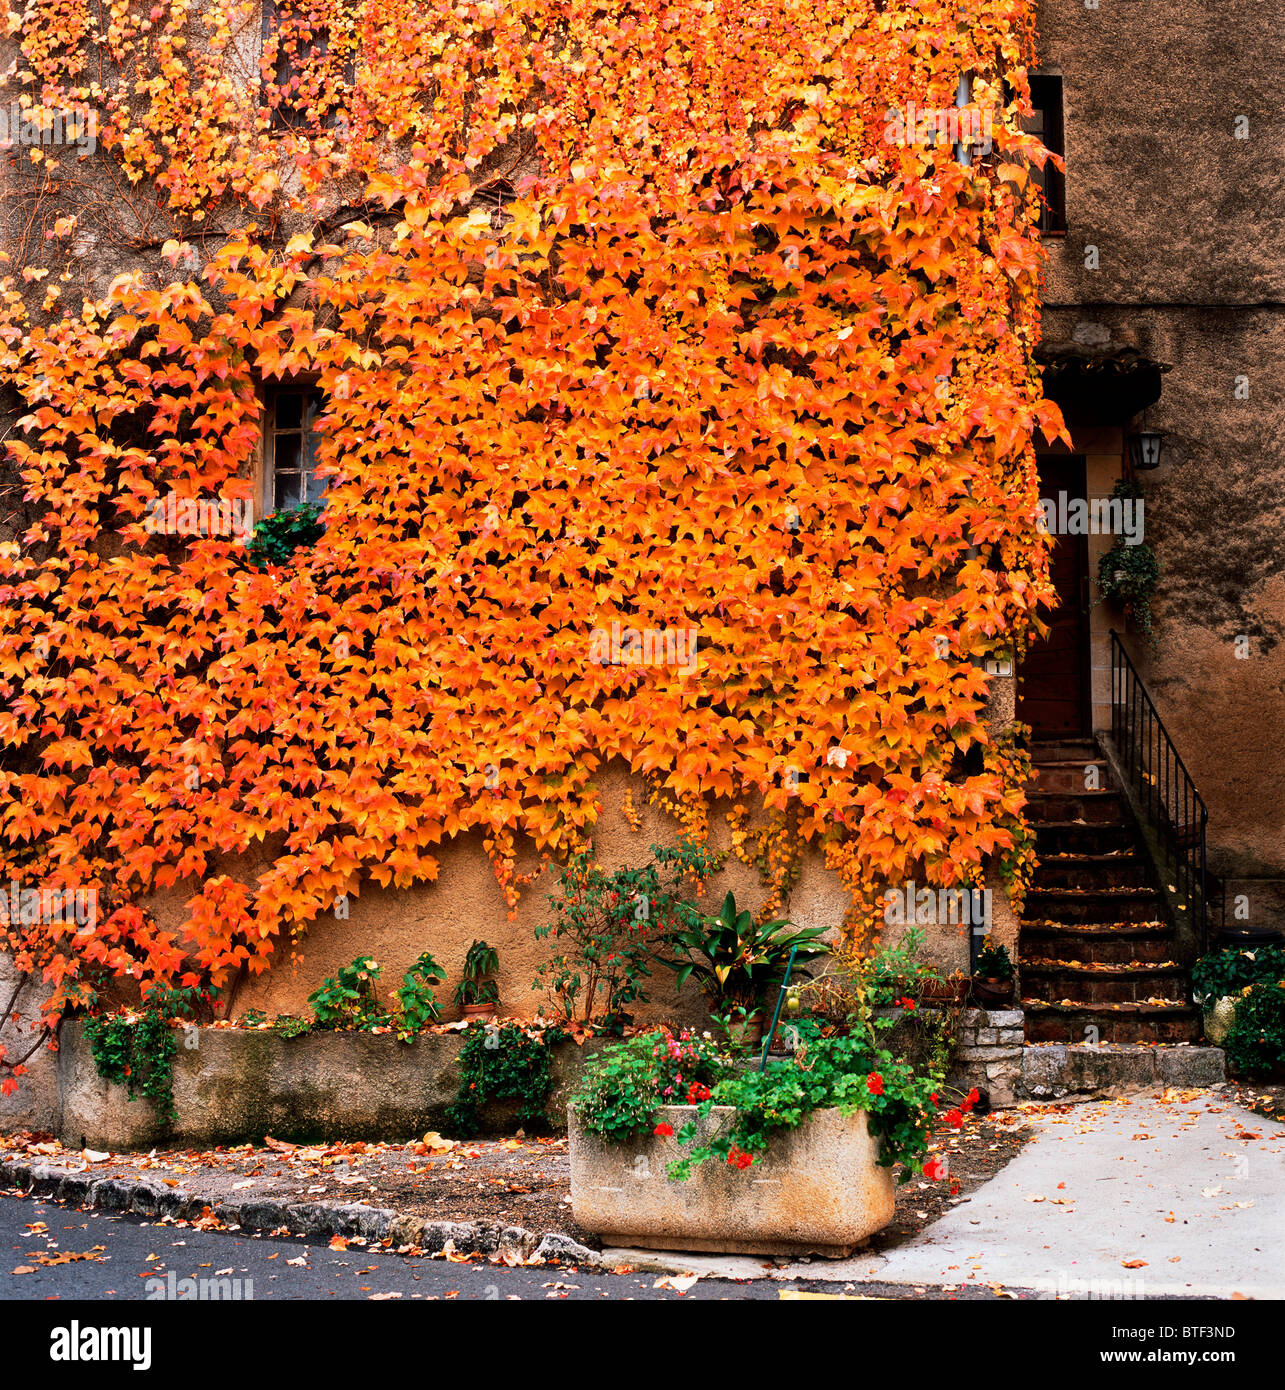 front of a dwelling covered by vines with leaves and fall colors